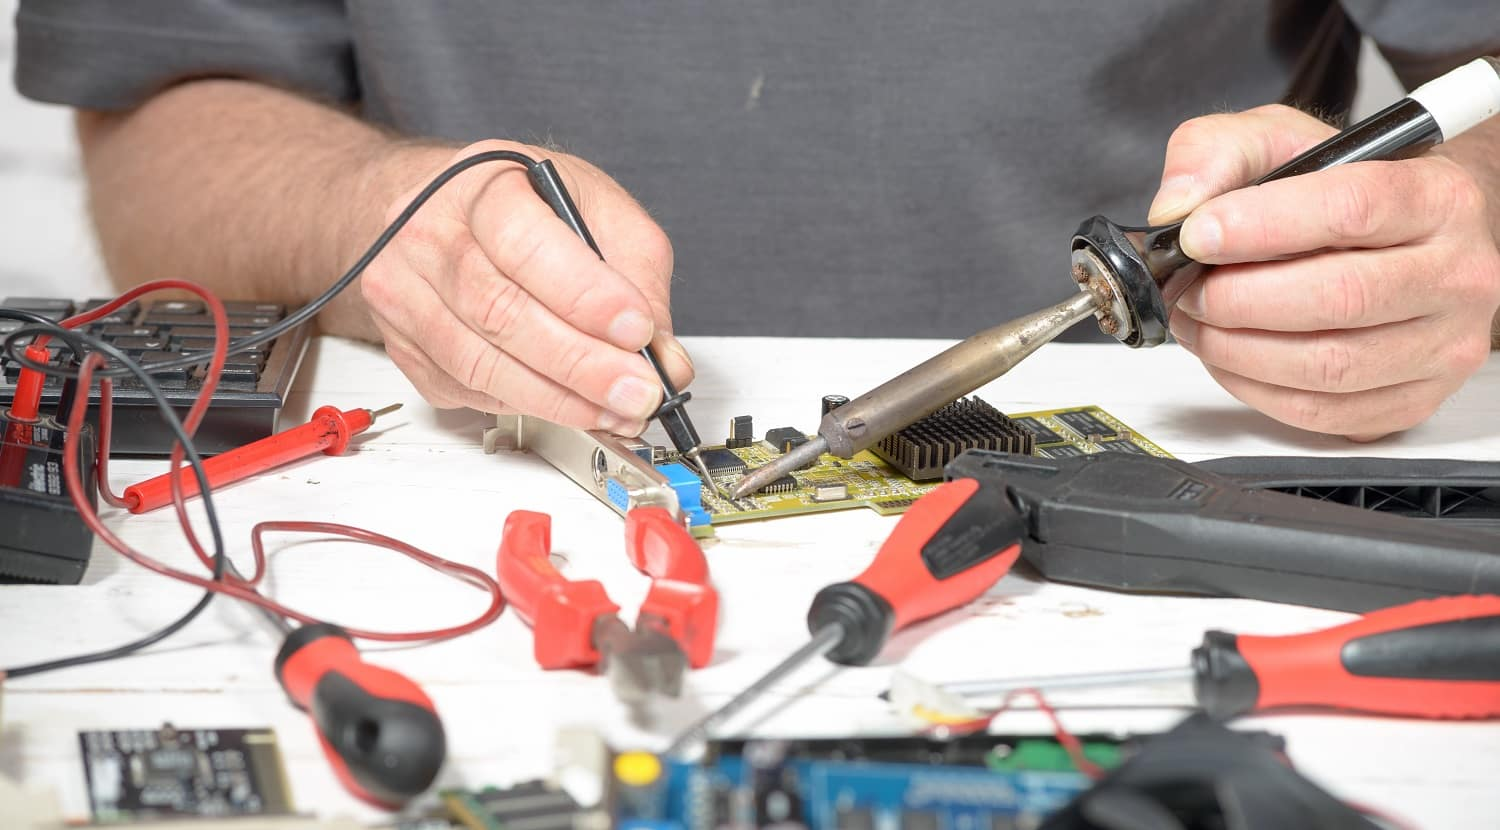 close-up of Soldering work in the computer